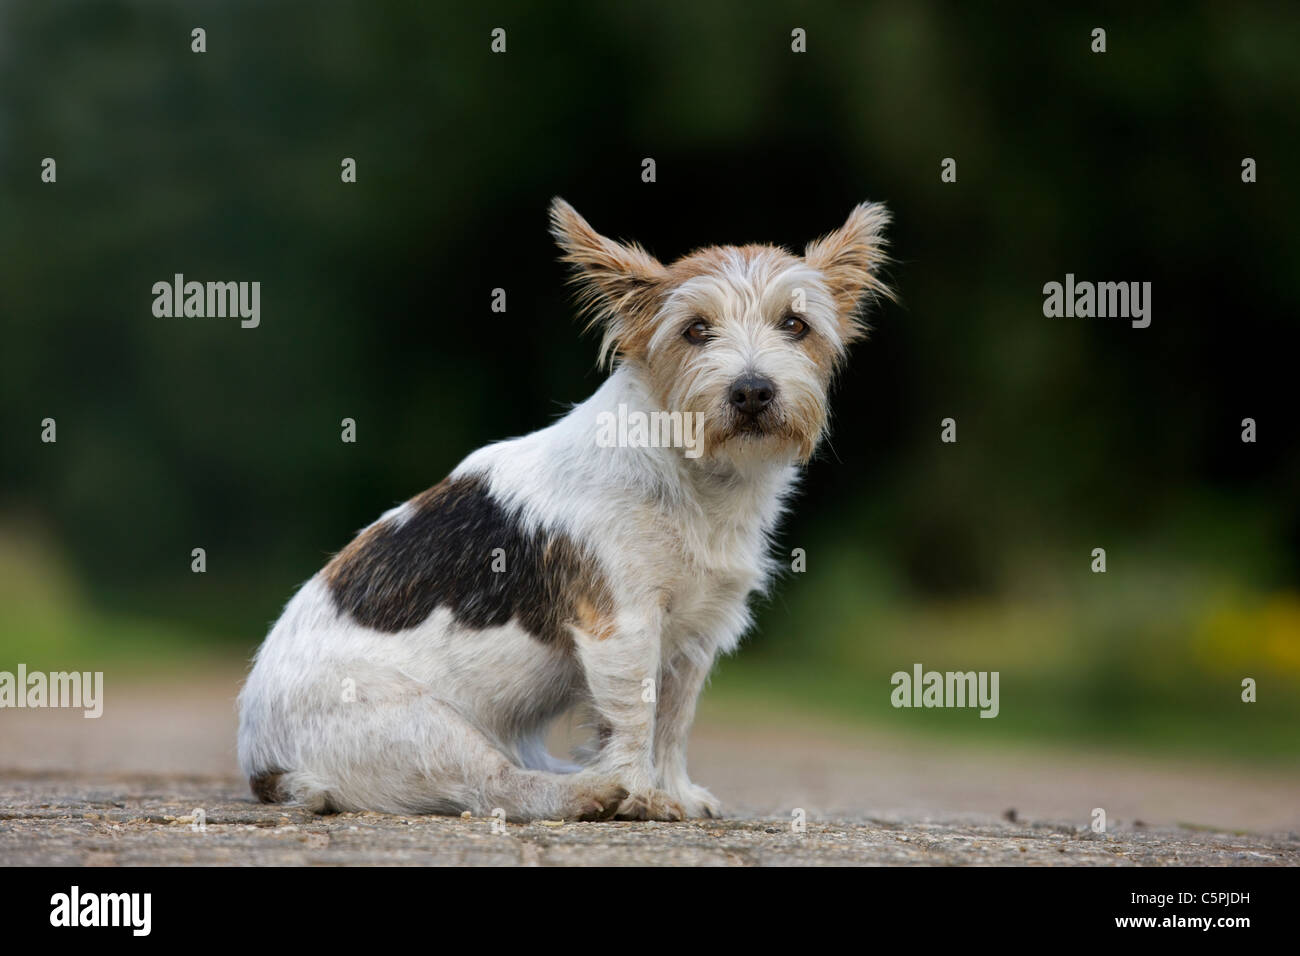 Rough-coated Jack Russell terrier (Canis lupus familiaris) sitting on path - Stock Image